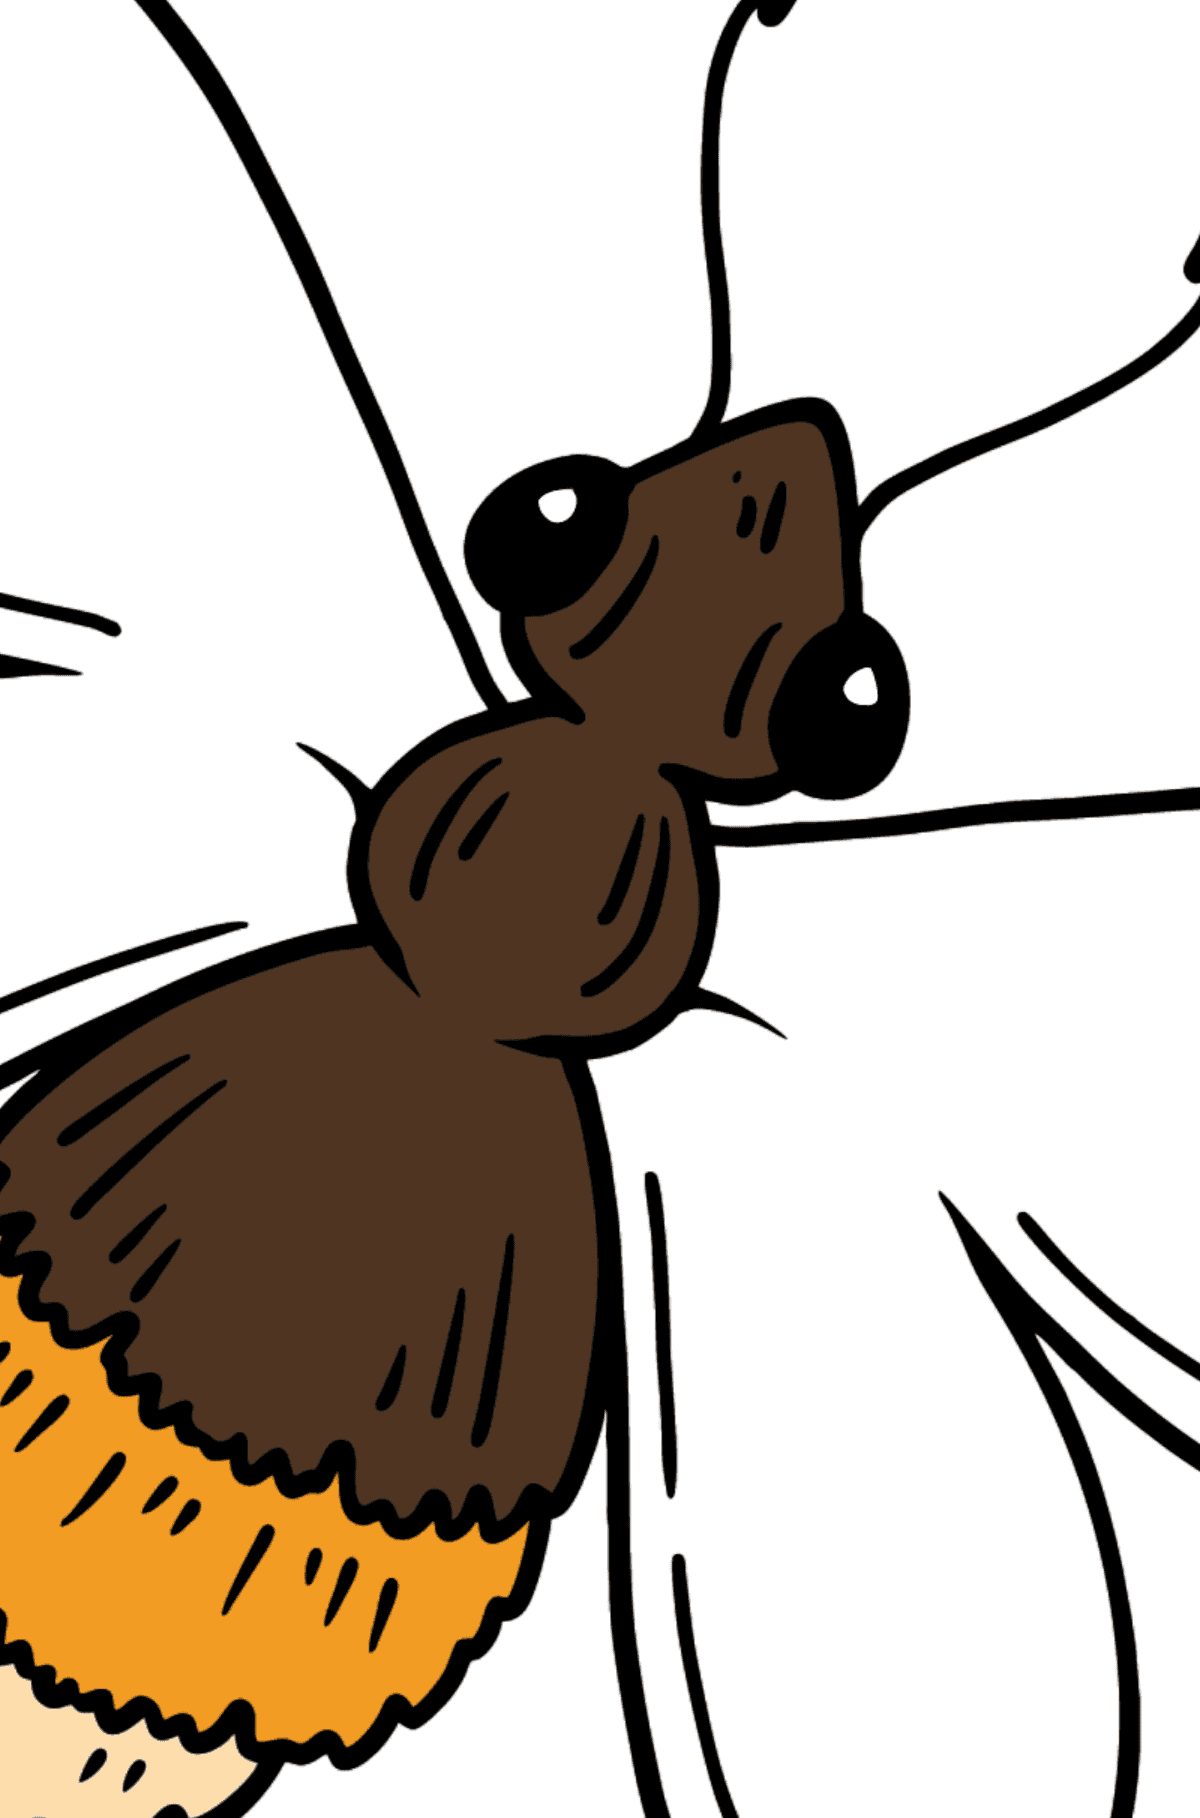 Bee coloring page - Math Coloring - Division for Kids